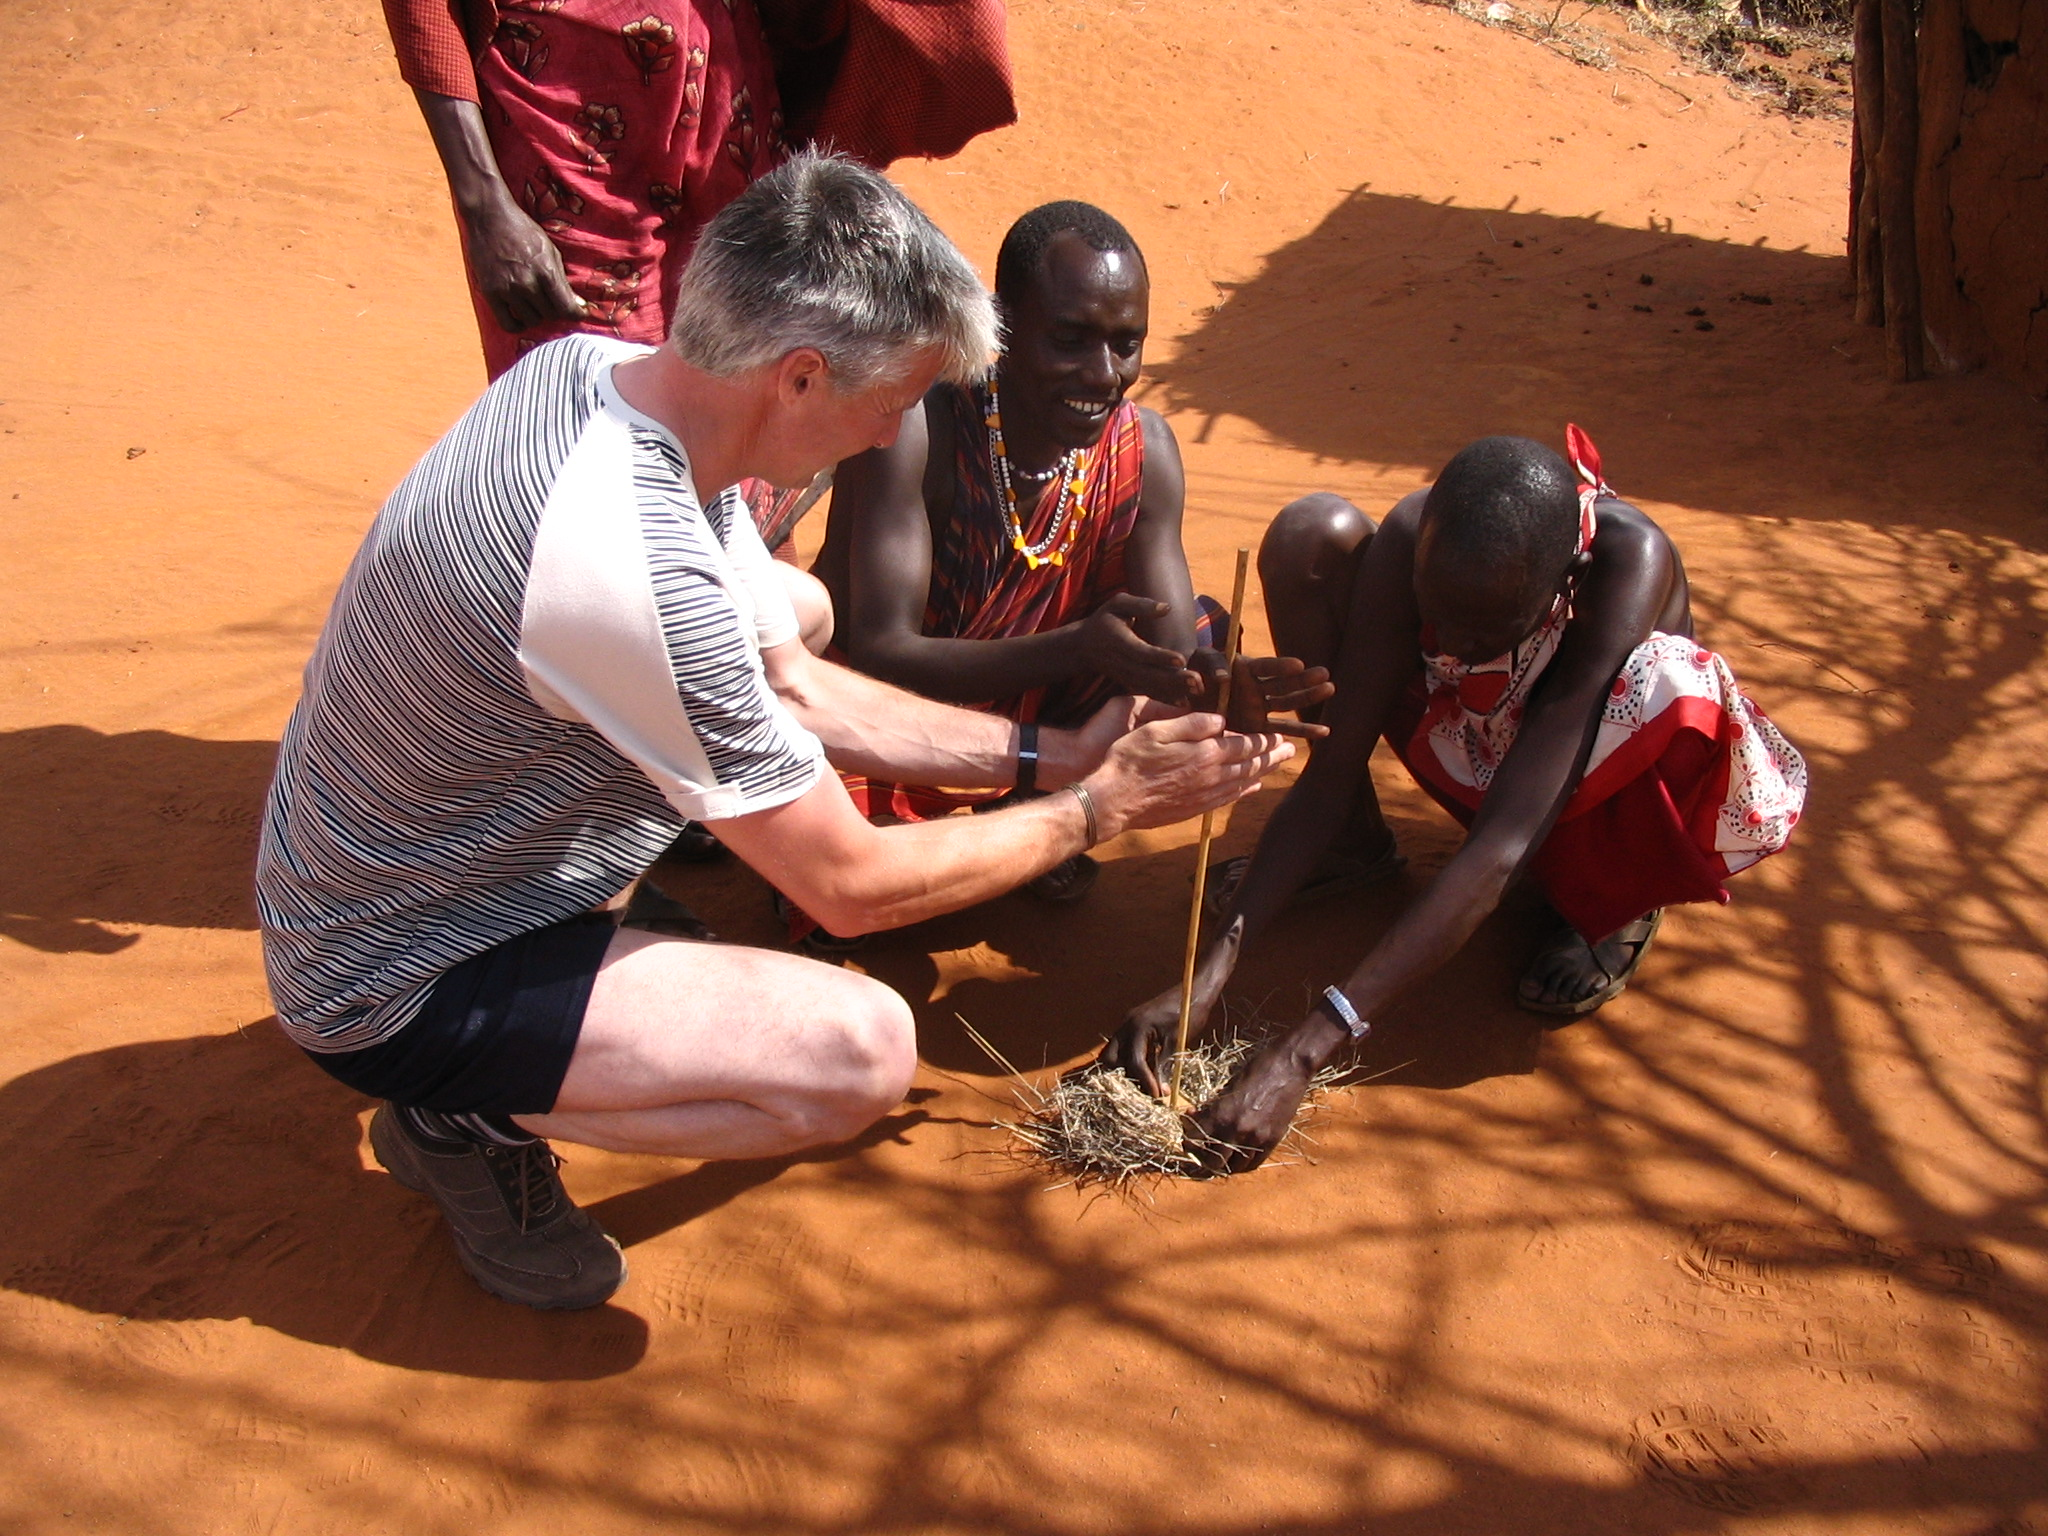 Maasai_people_and_a_tourist_lighting_a_fire_in_a_Maasai_village_on_the_A109_road,_Kenya.jpg